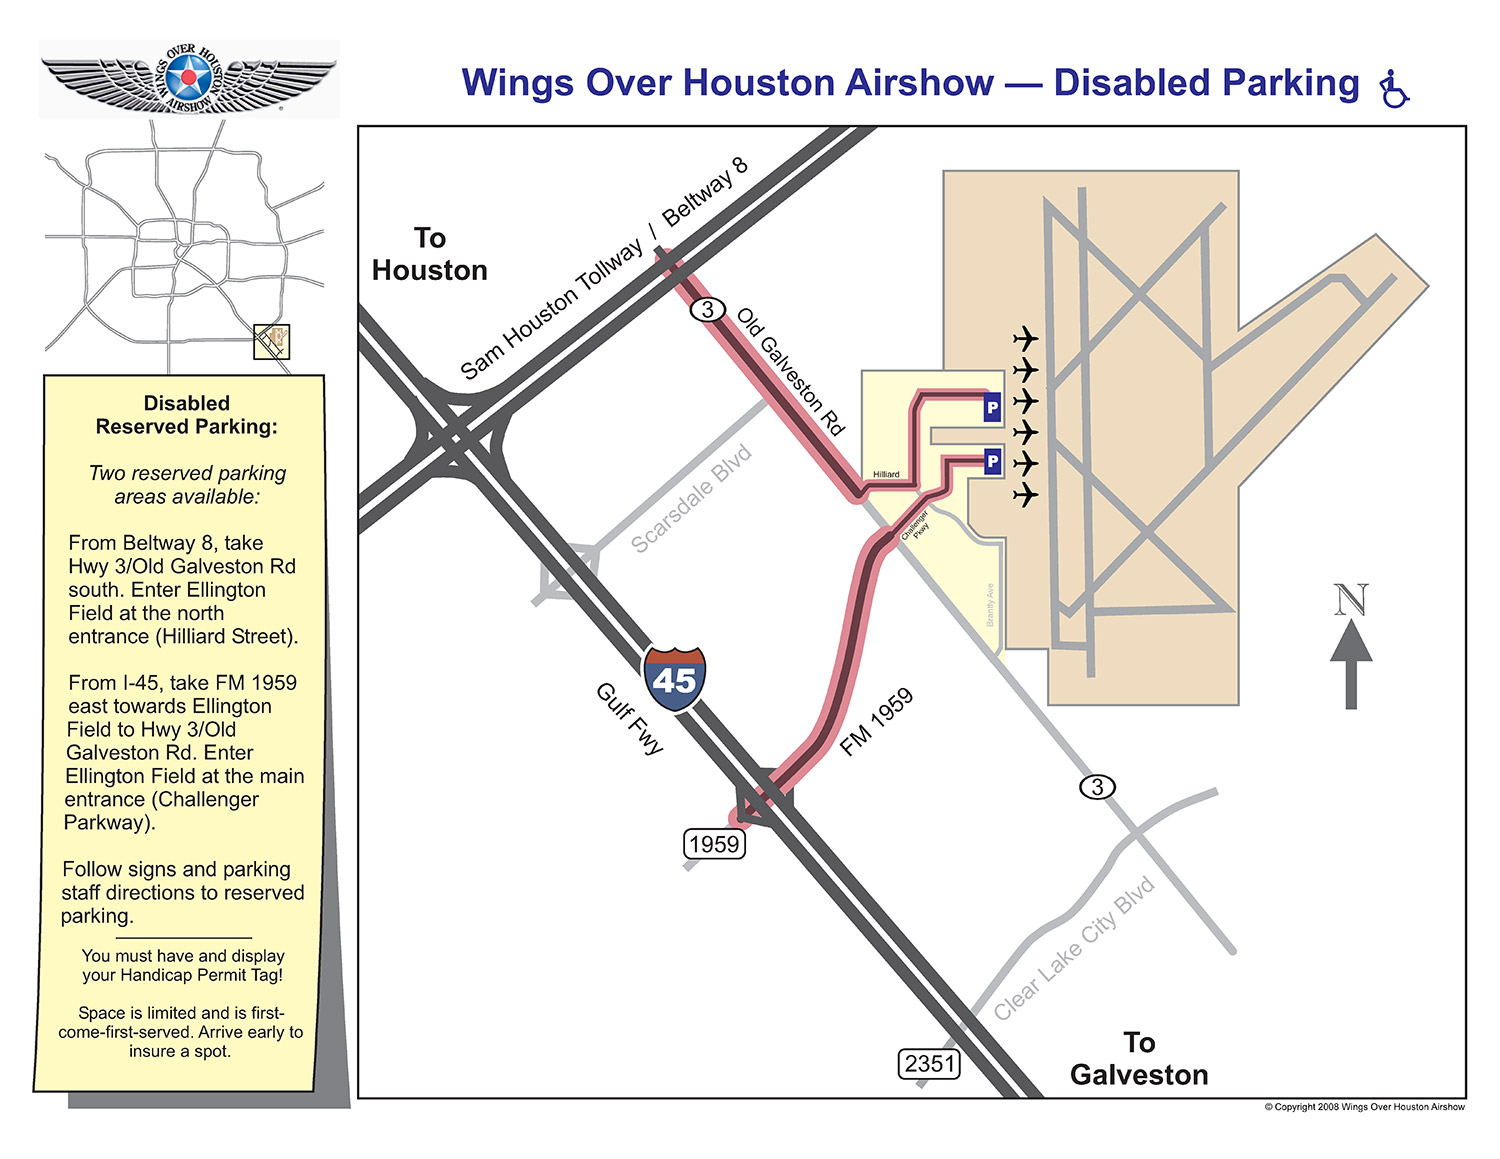 Parking | Directions | Houston Airshow | Travel | Hotels on houston ship channel industrial map, houston inner loop zip code map, houston tx location map, houston metro area map, houston beltway 8 map, houston tx area map, houston gang areas map, houston port map, houston road map, houston county map, south texas area map, houston hospitals map, houston on us map, houston tx counties map, houston tx zip map, greater houston map, houston freeway map, san jac south campus map, houston districts map, houston street map,